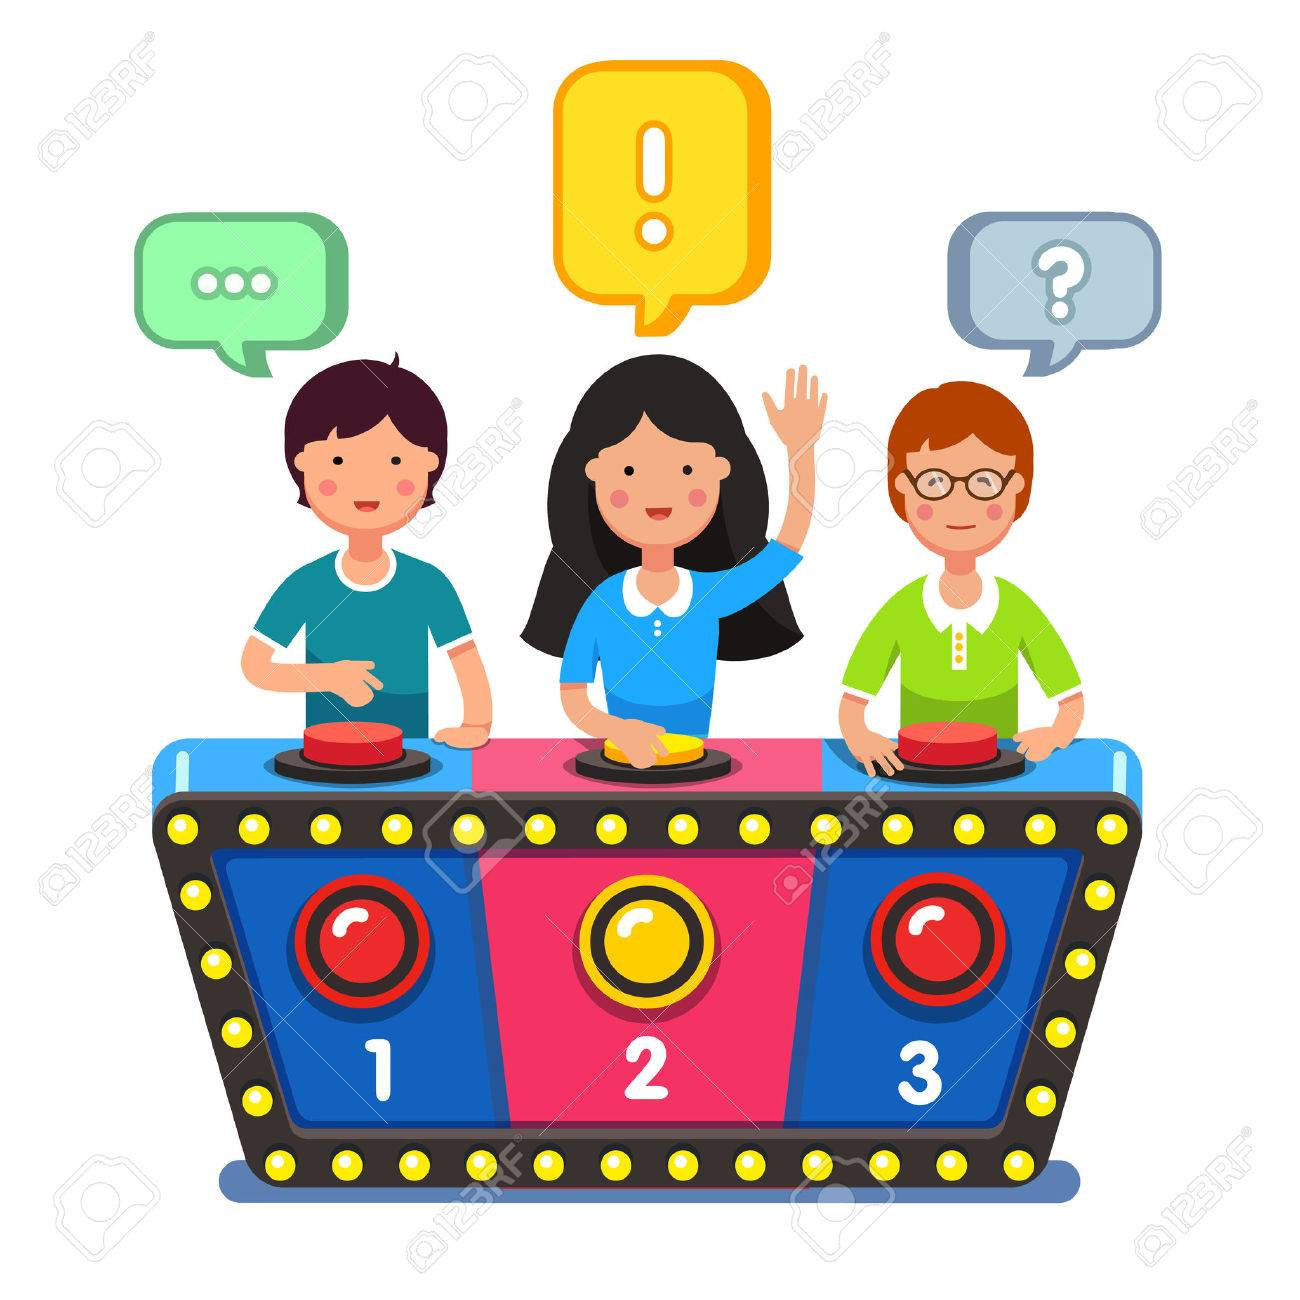 Kids Playing Quiz Game Answering Questions Standing At The Stand With Buttons Girl Pressed